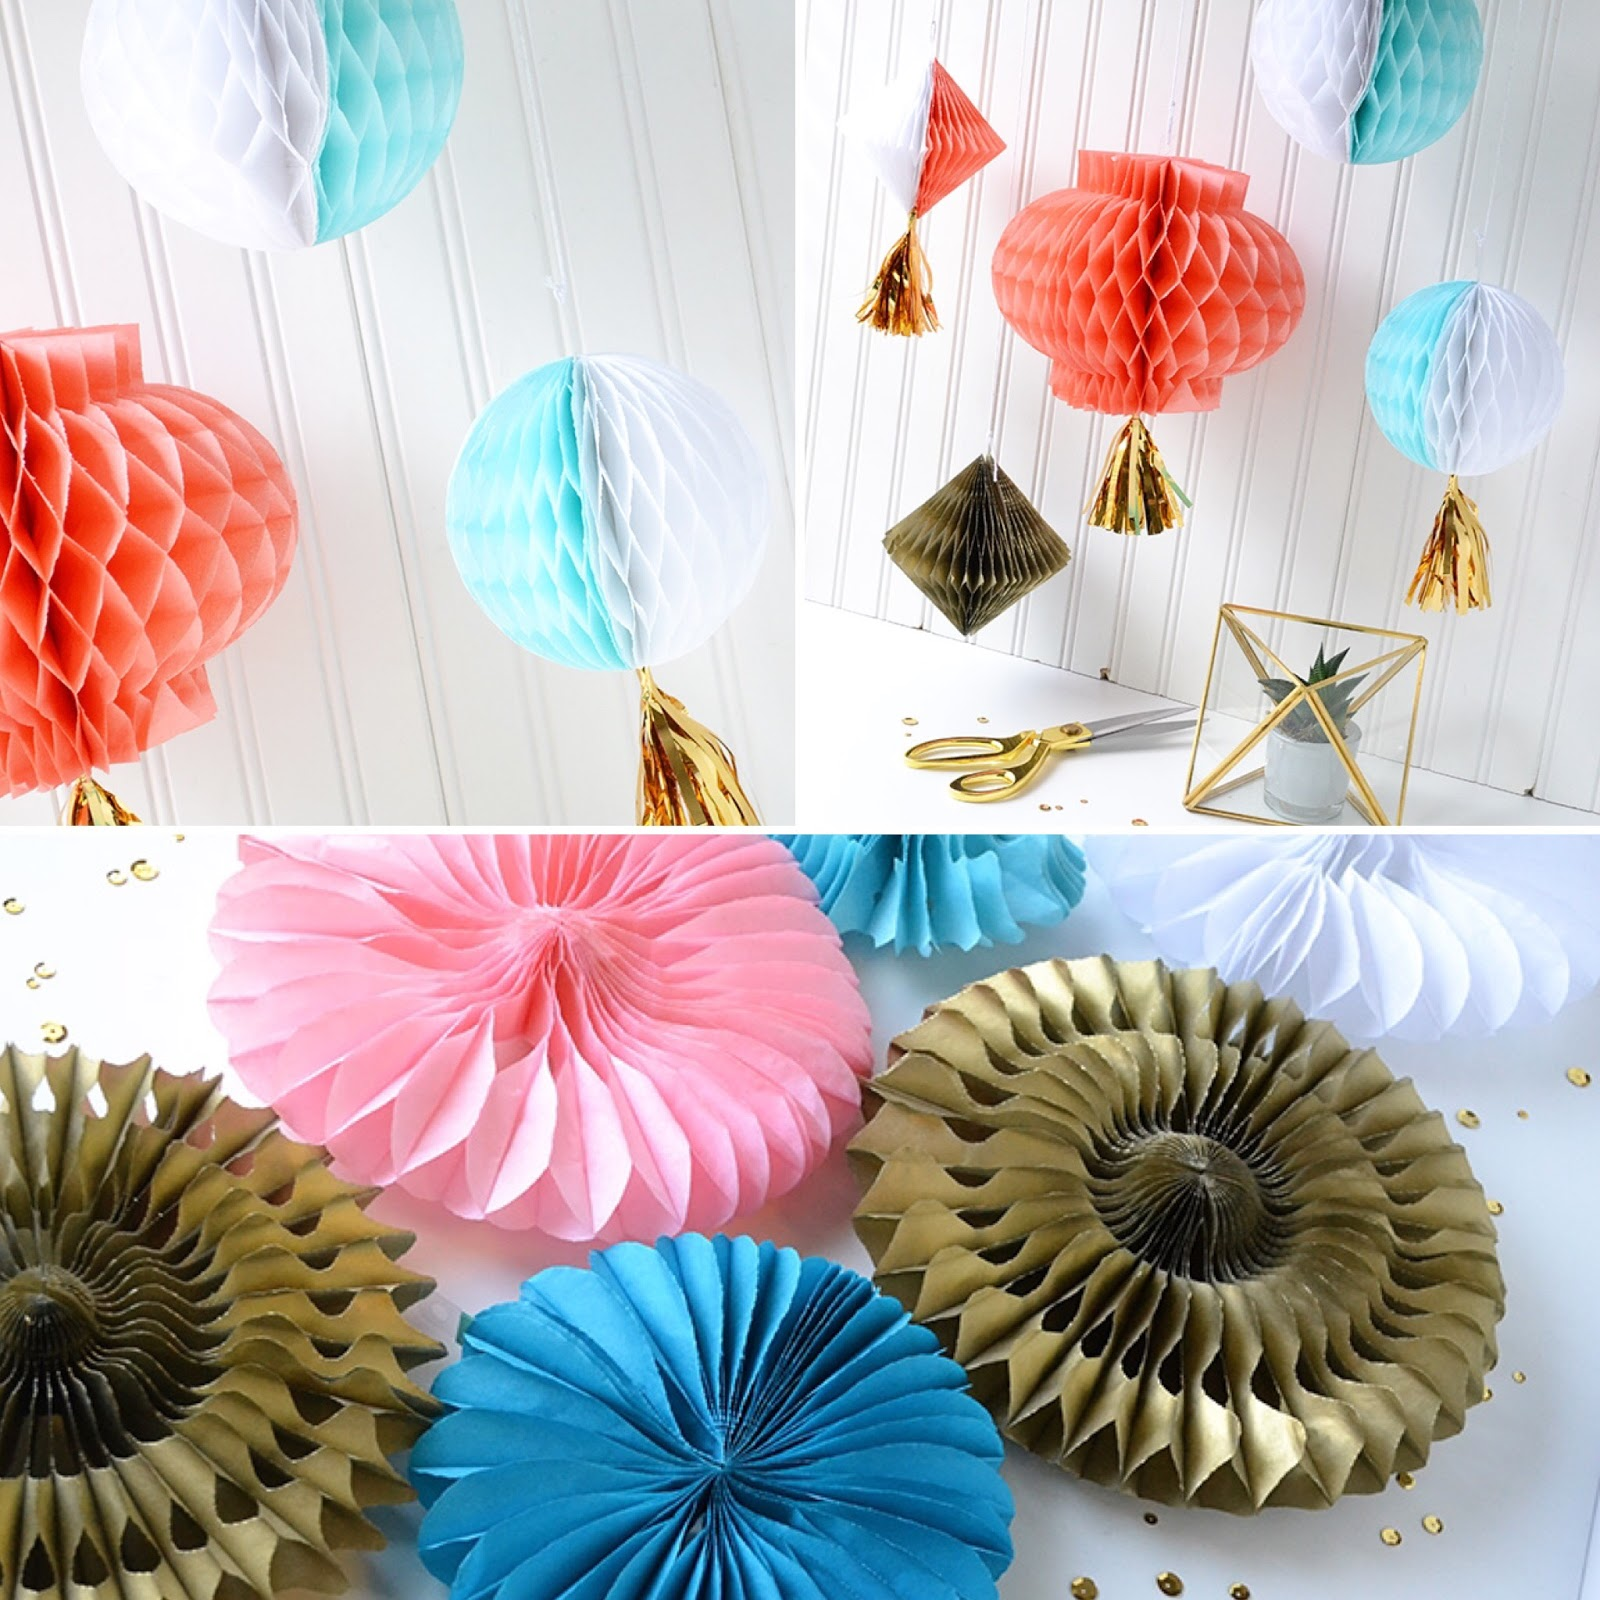 Aly Dosdall Honeycomb Paper Party Decorations